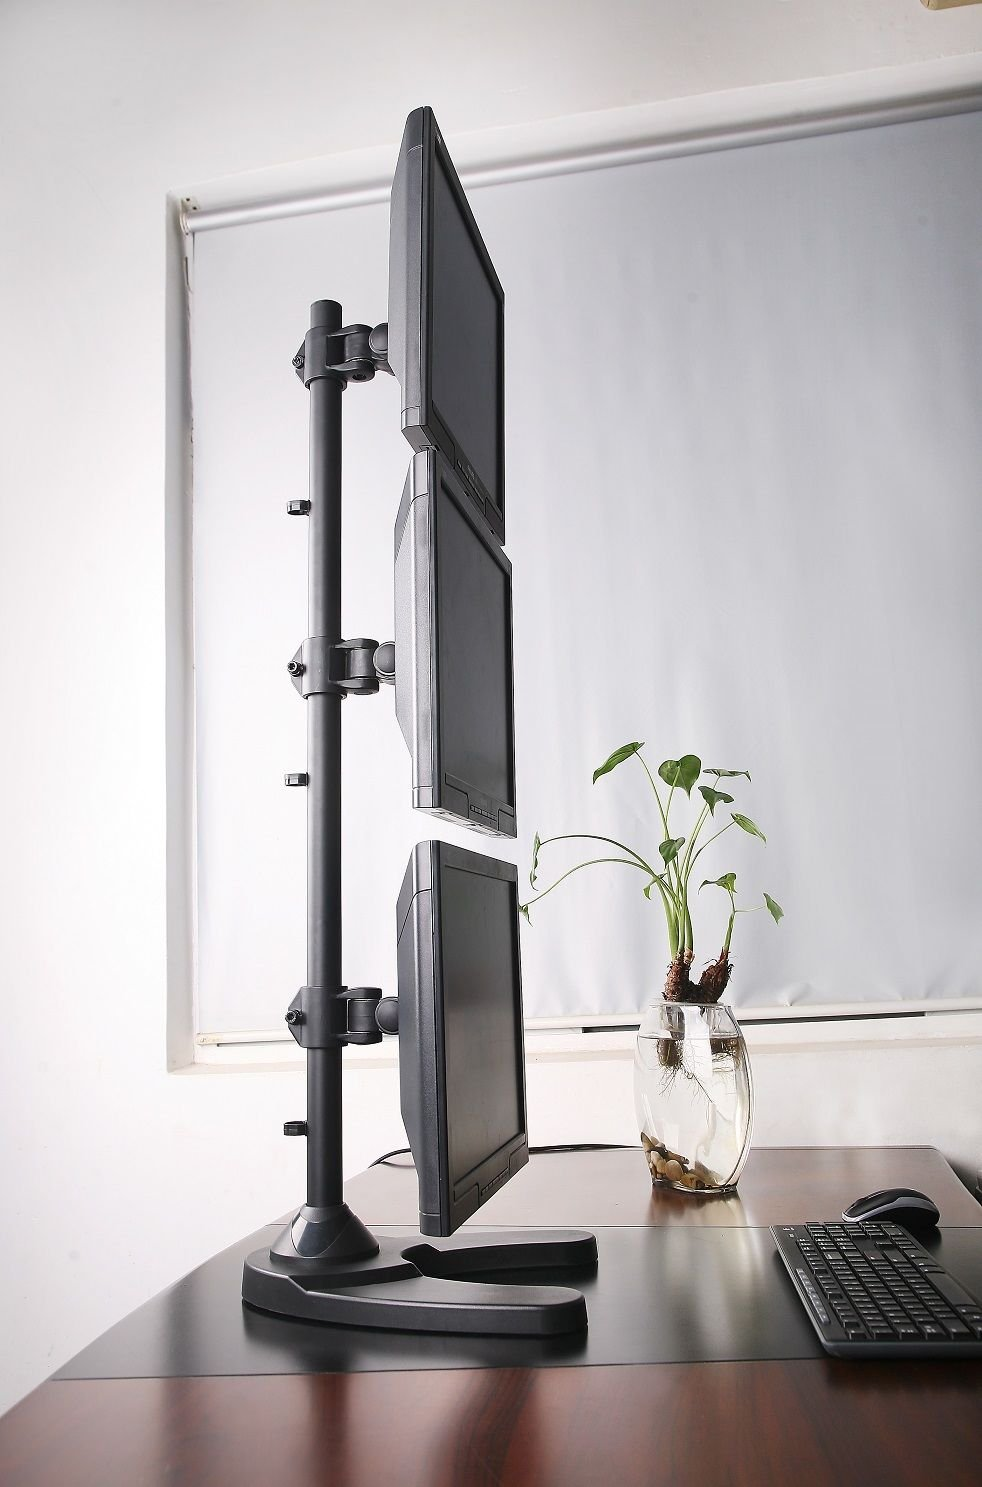 USED Triple Monitor Desk Stand/Mount Free Standing Vertical 3 Screens upto 27'' by SANOXY (Image #4)